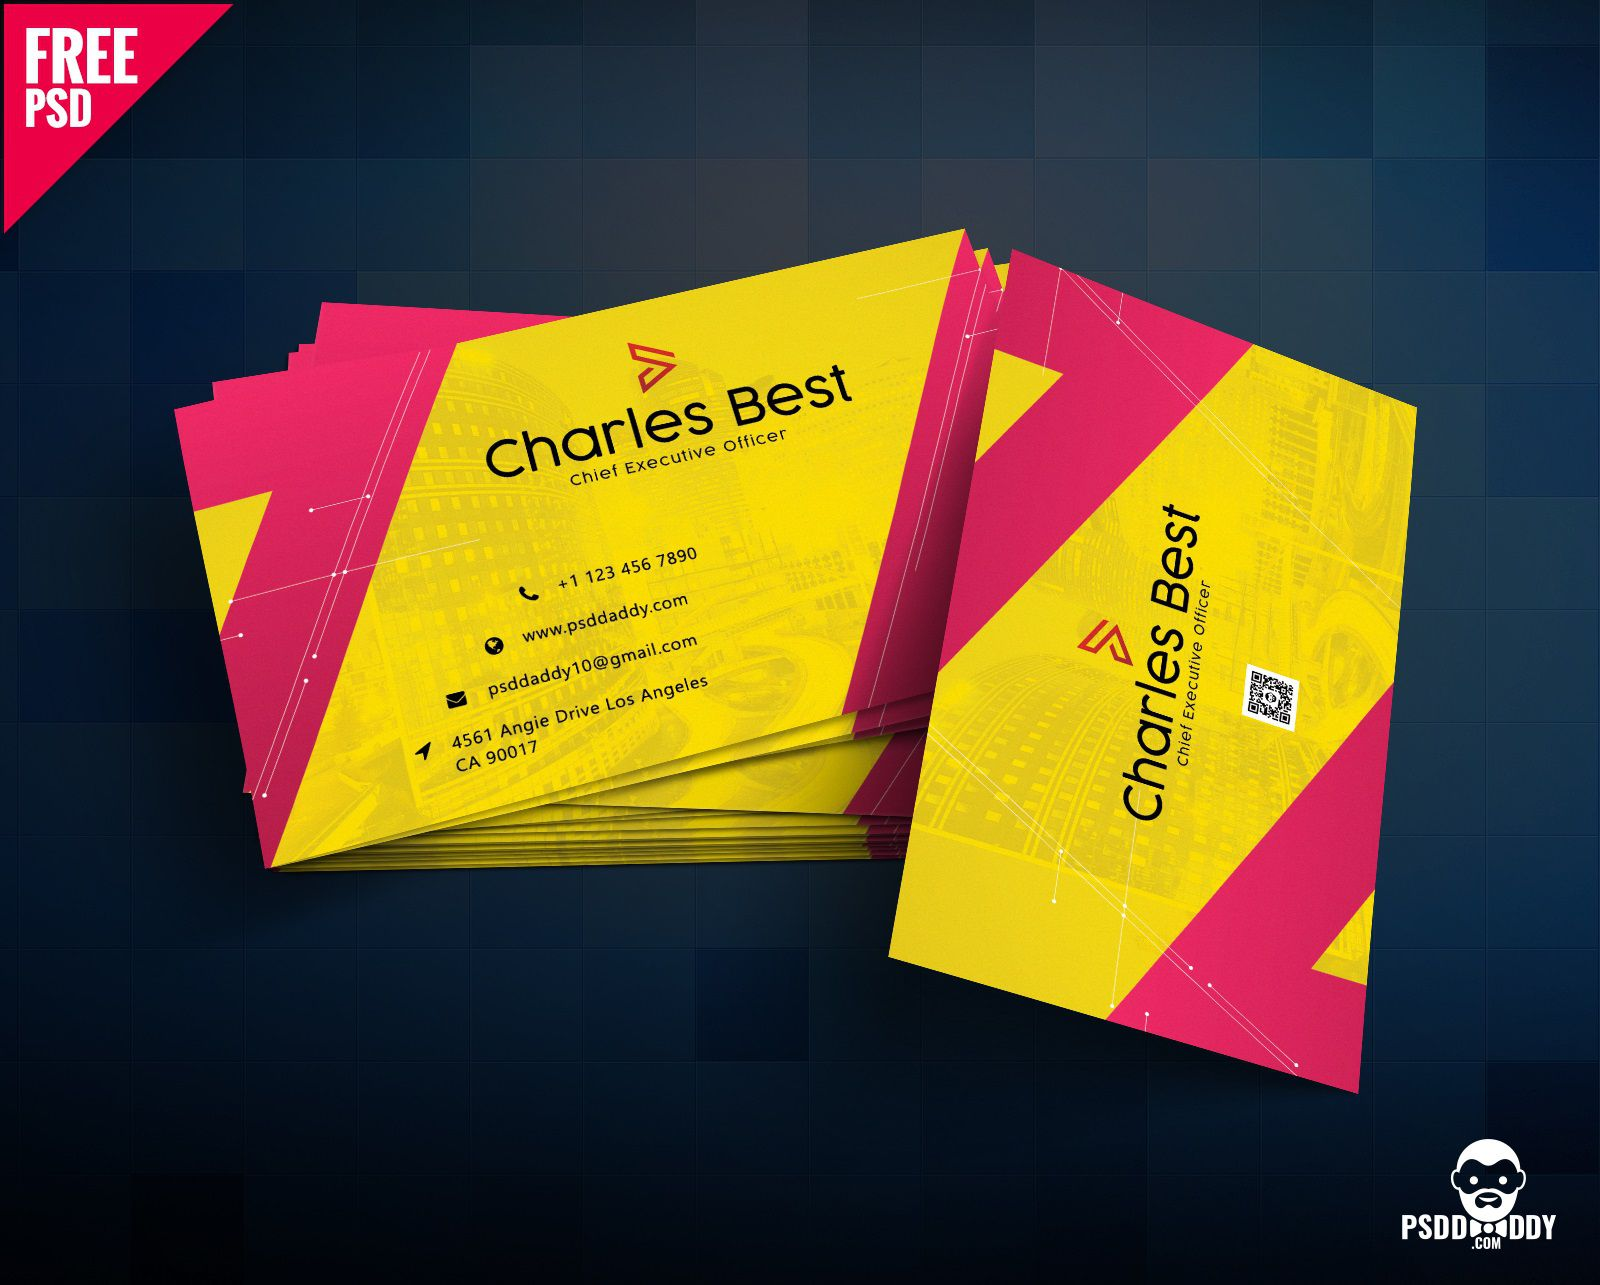 003 Beautiful Free Photoshop Busines Card Template Download Concept  Adobe Psd Visiting DesignFull